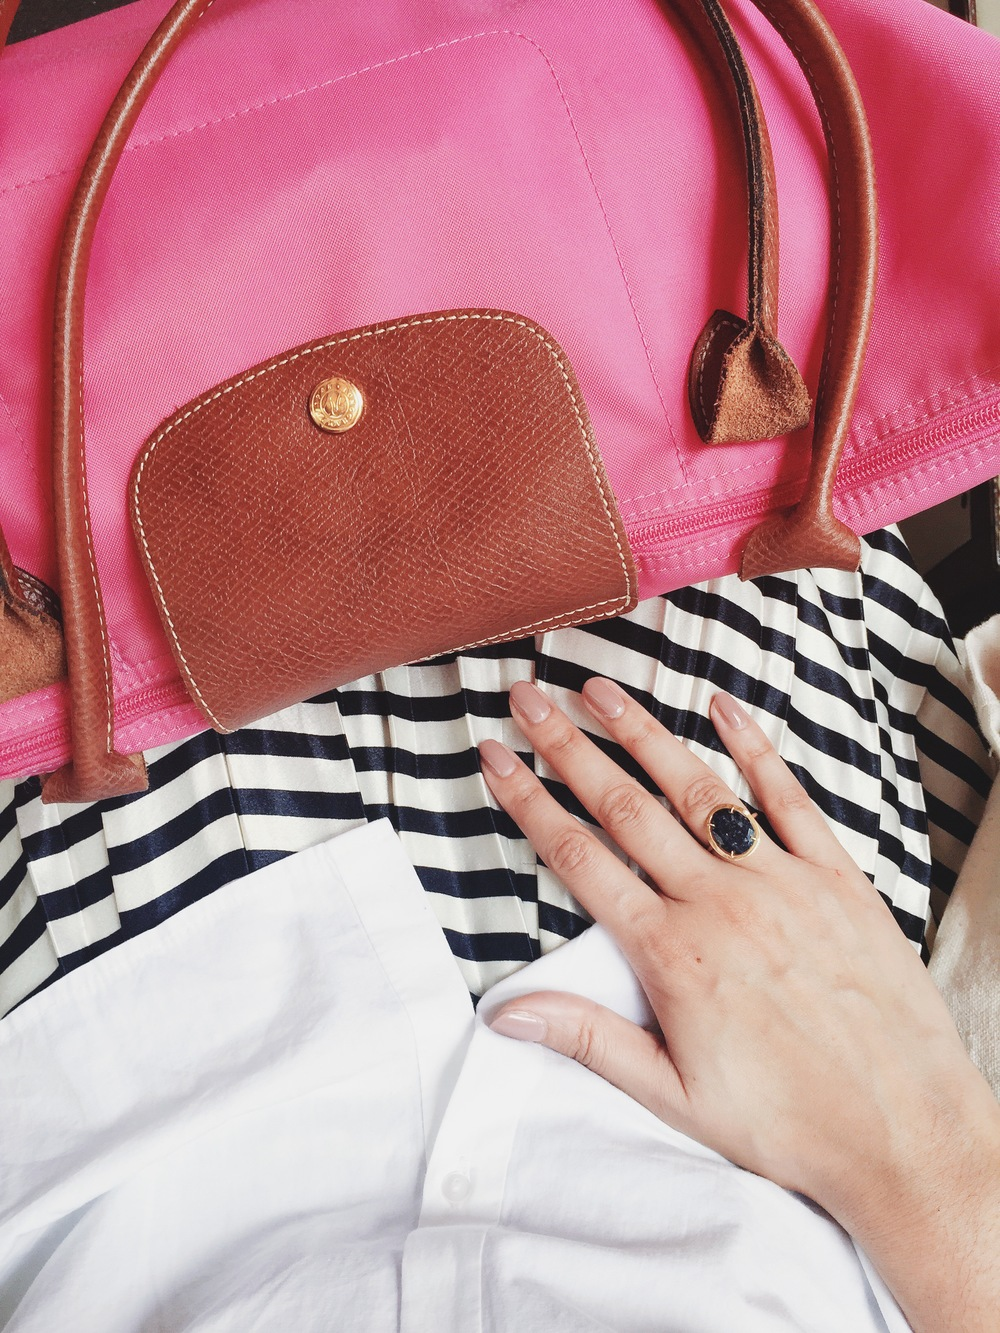 my fave things (no irony there) patterns, manicures and pink!